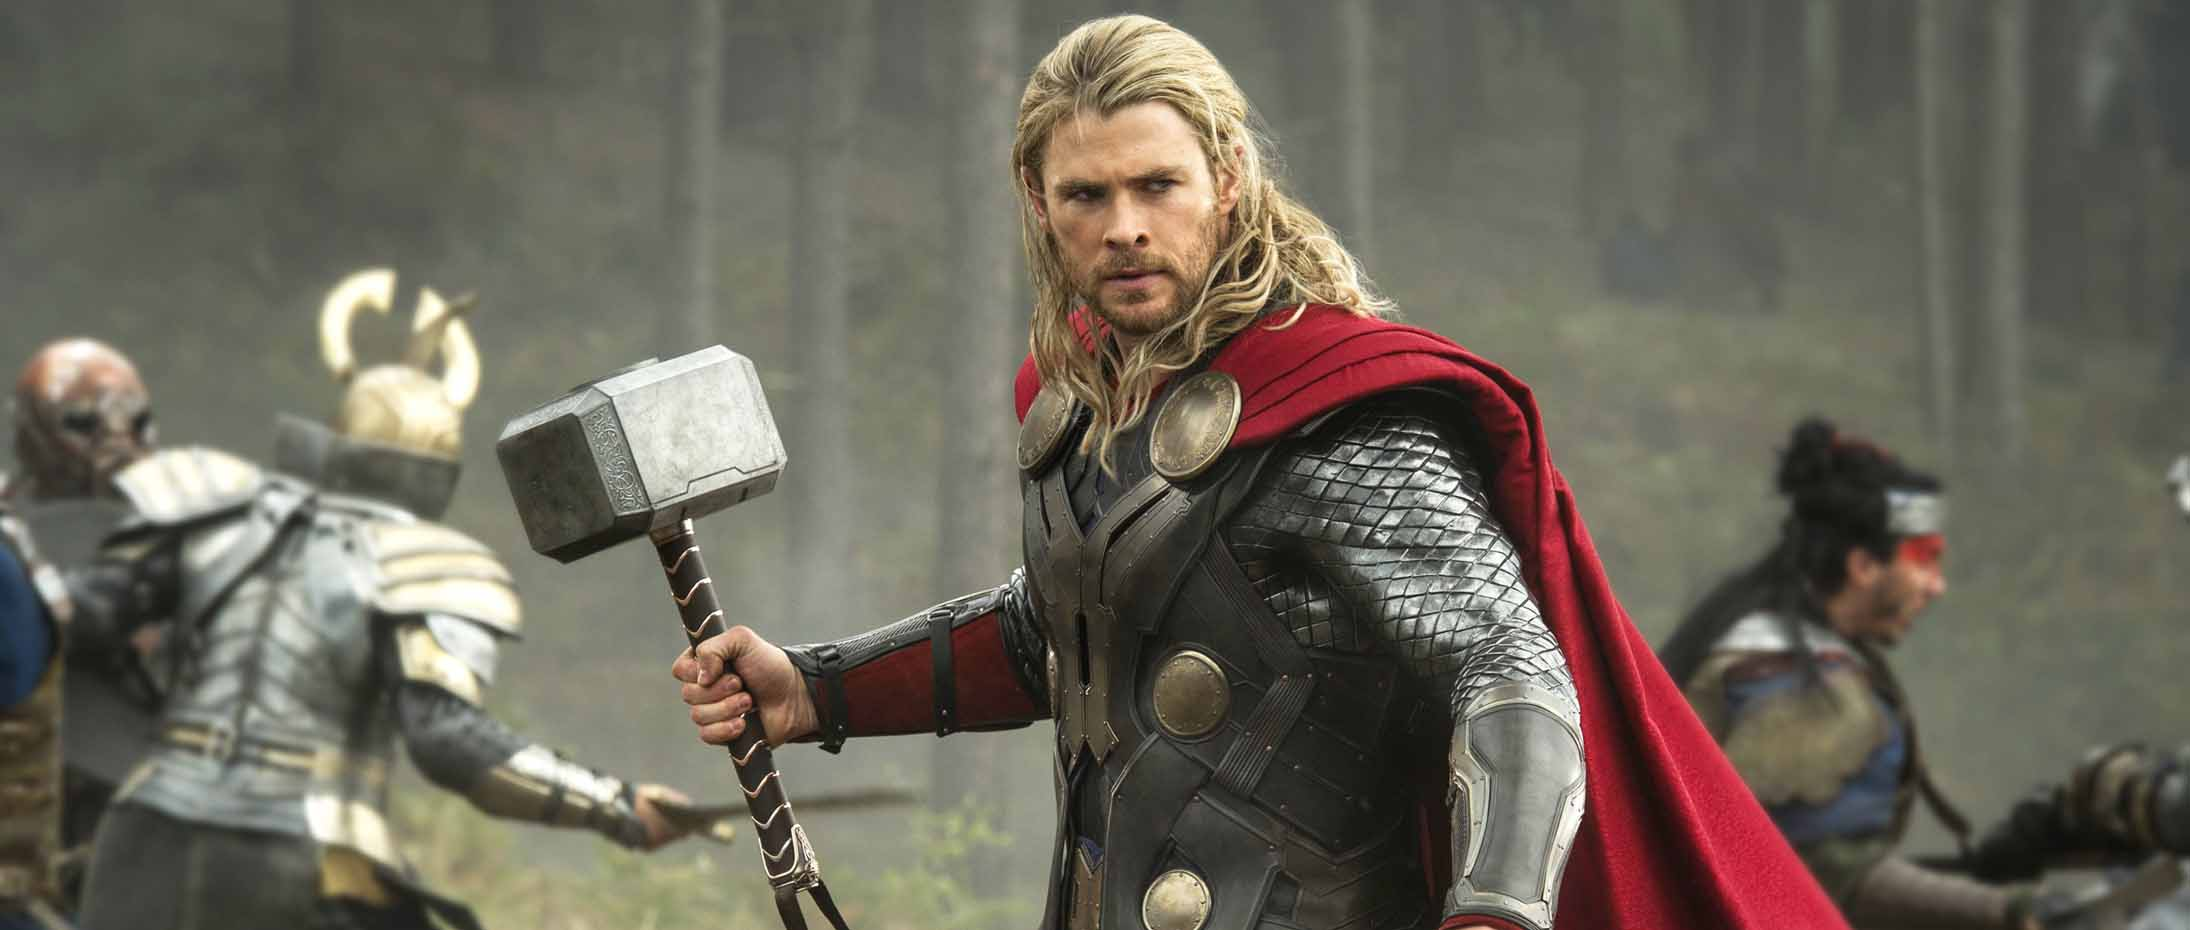 Chris Hemsworth just announced his feminist upbringing, we love him even more